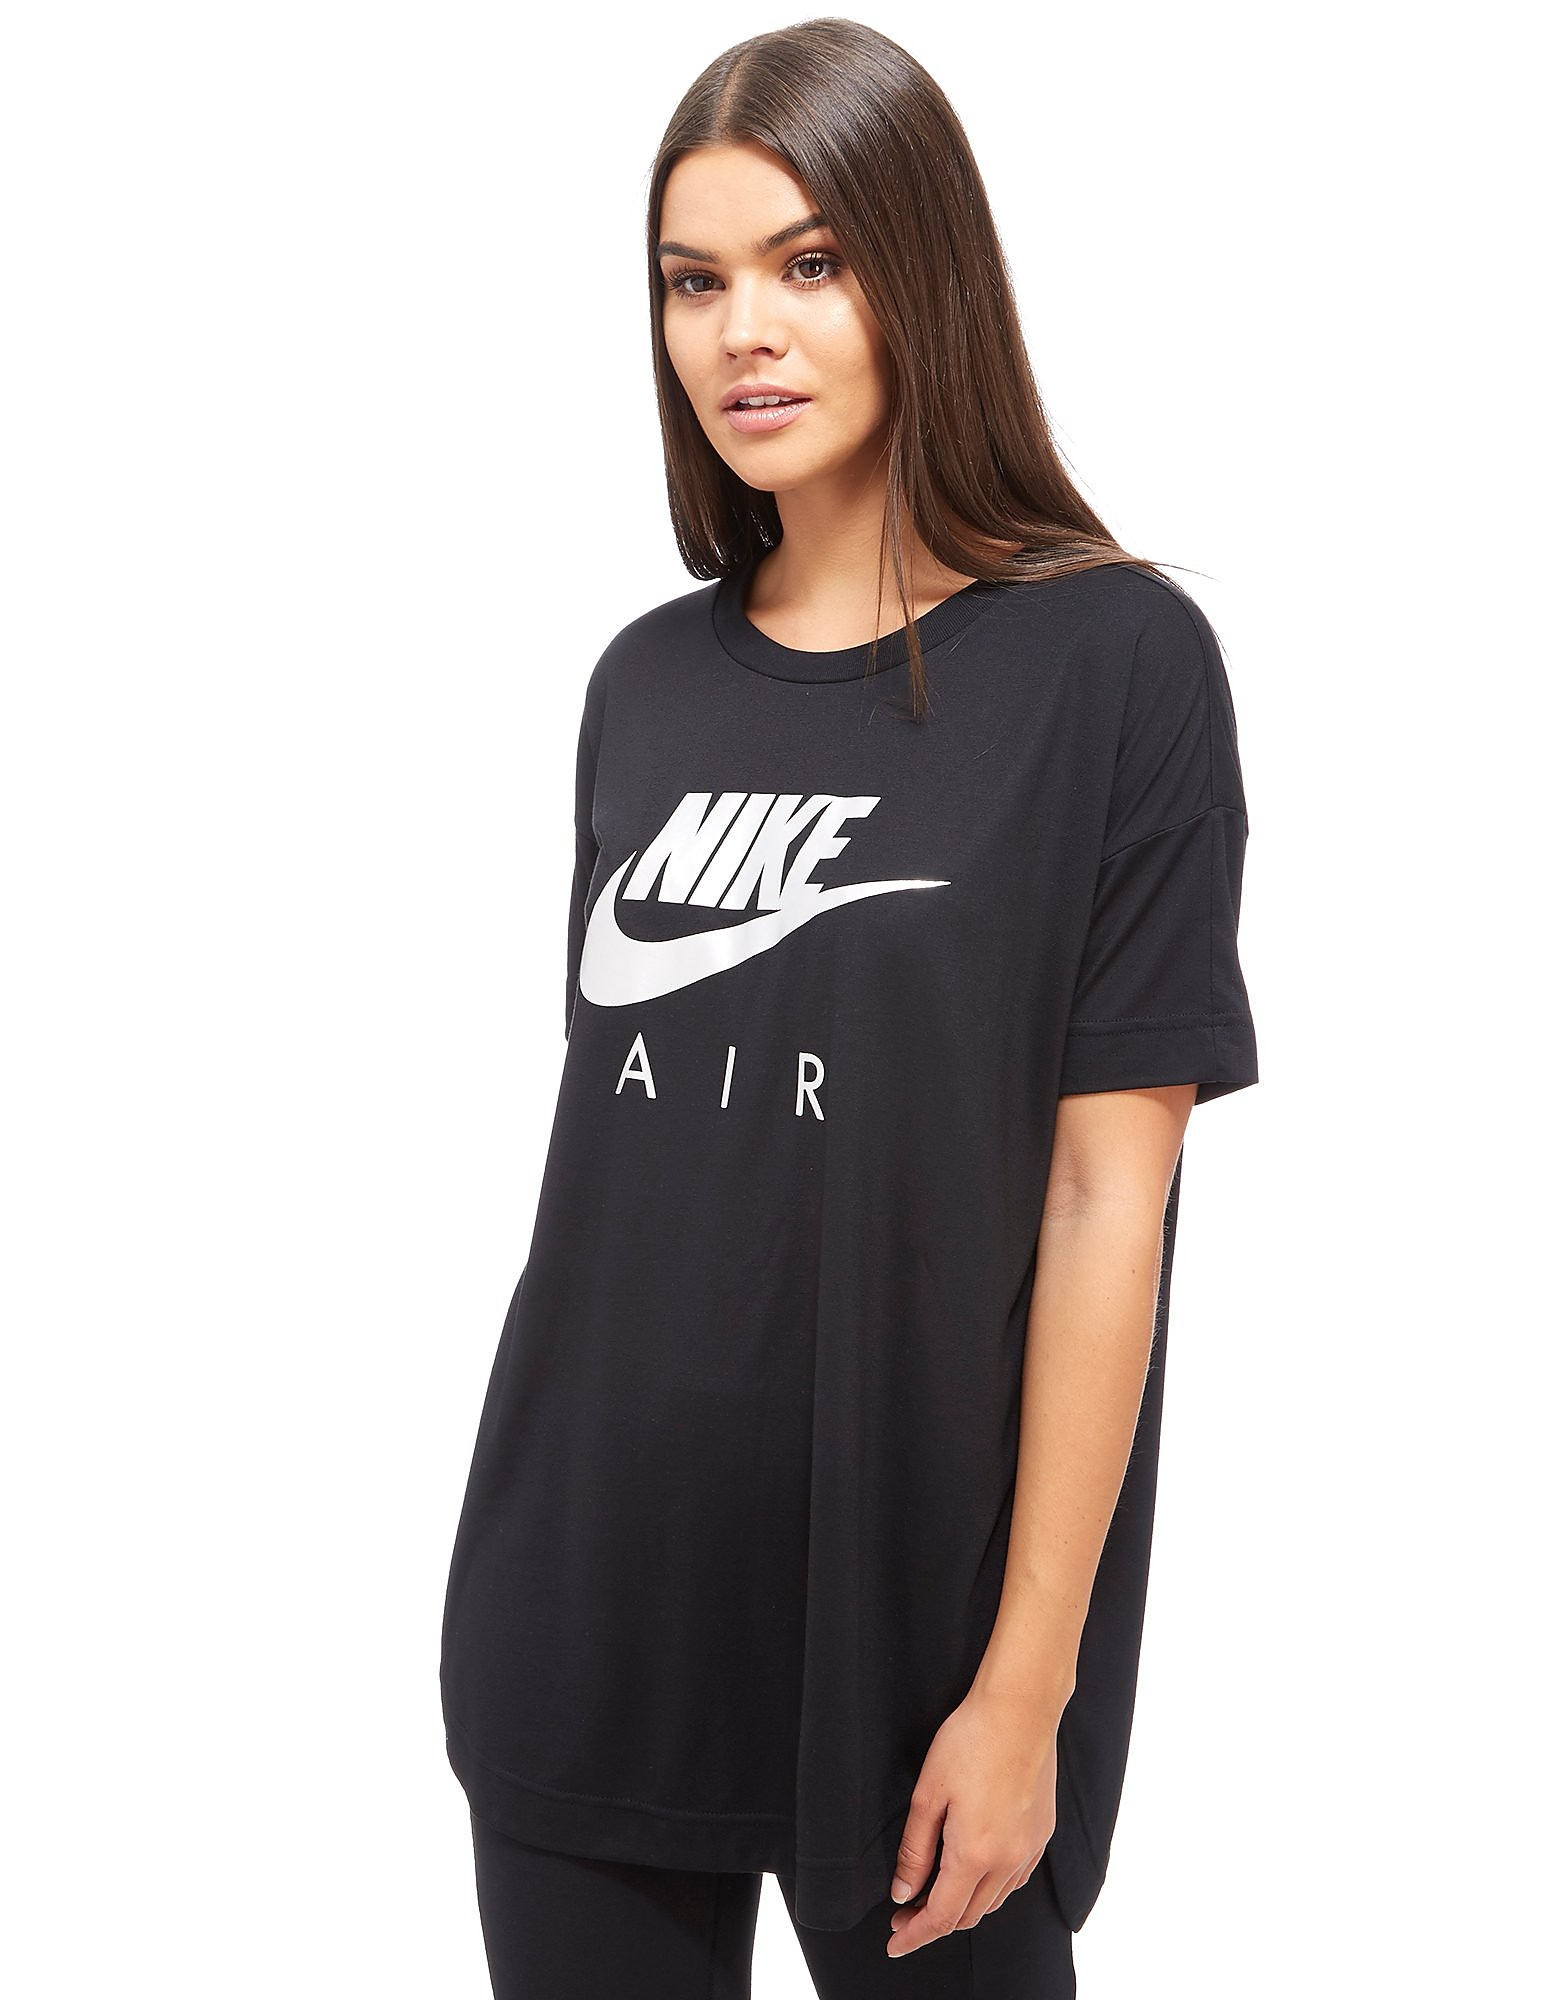 Nike Air Scoop T-Shirt